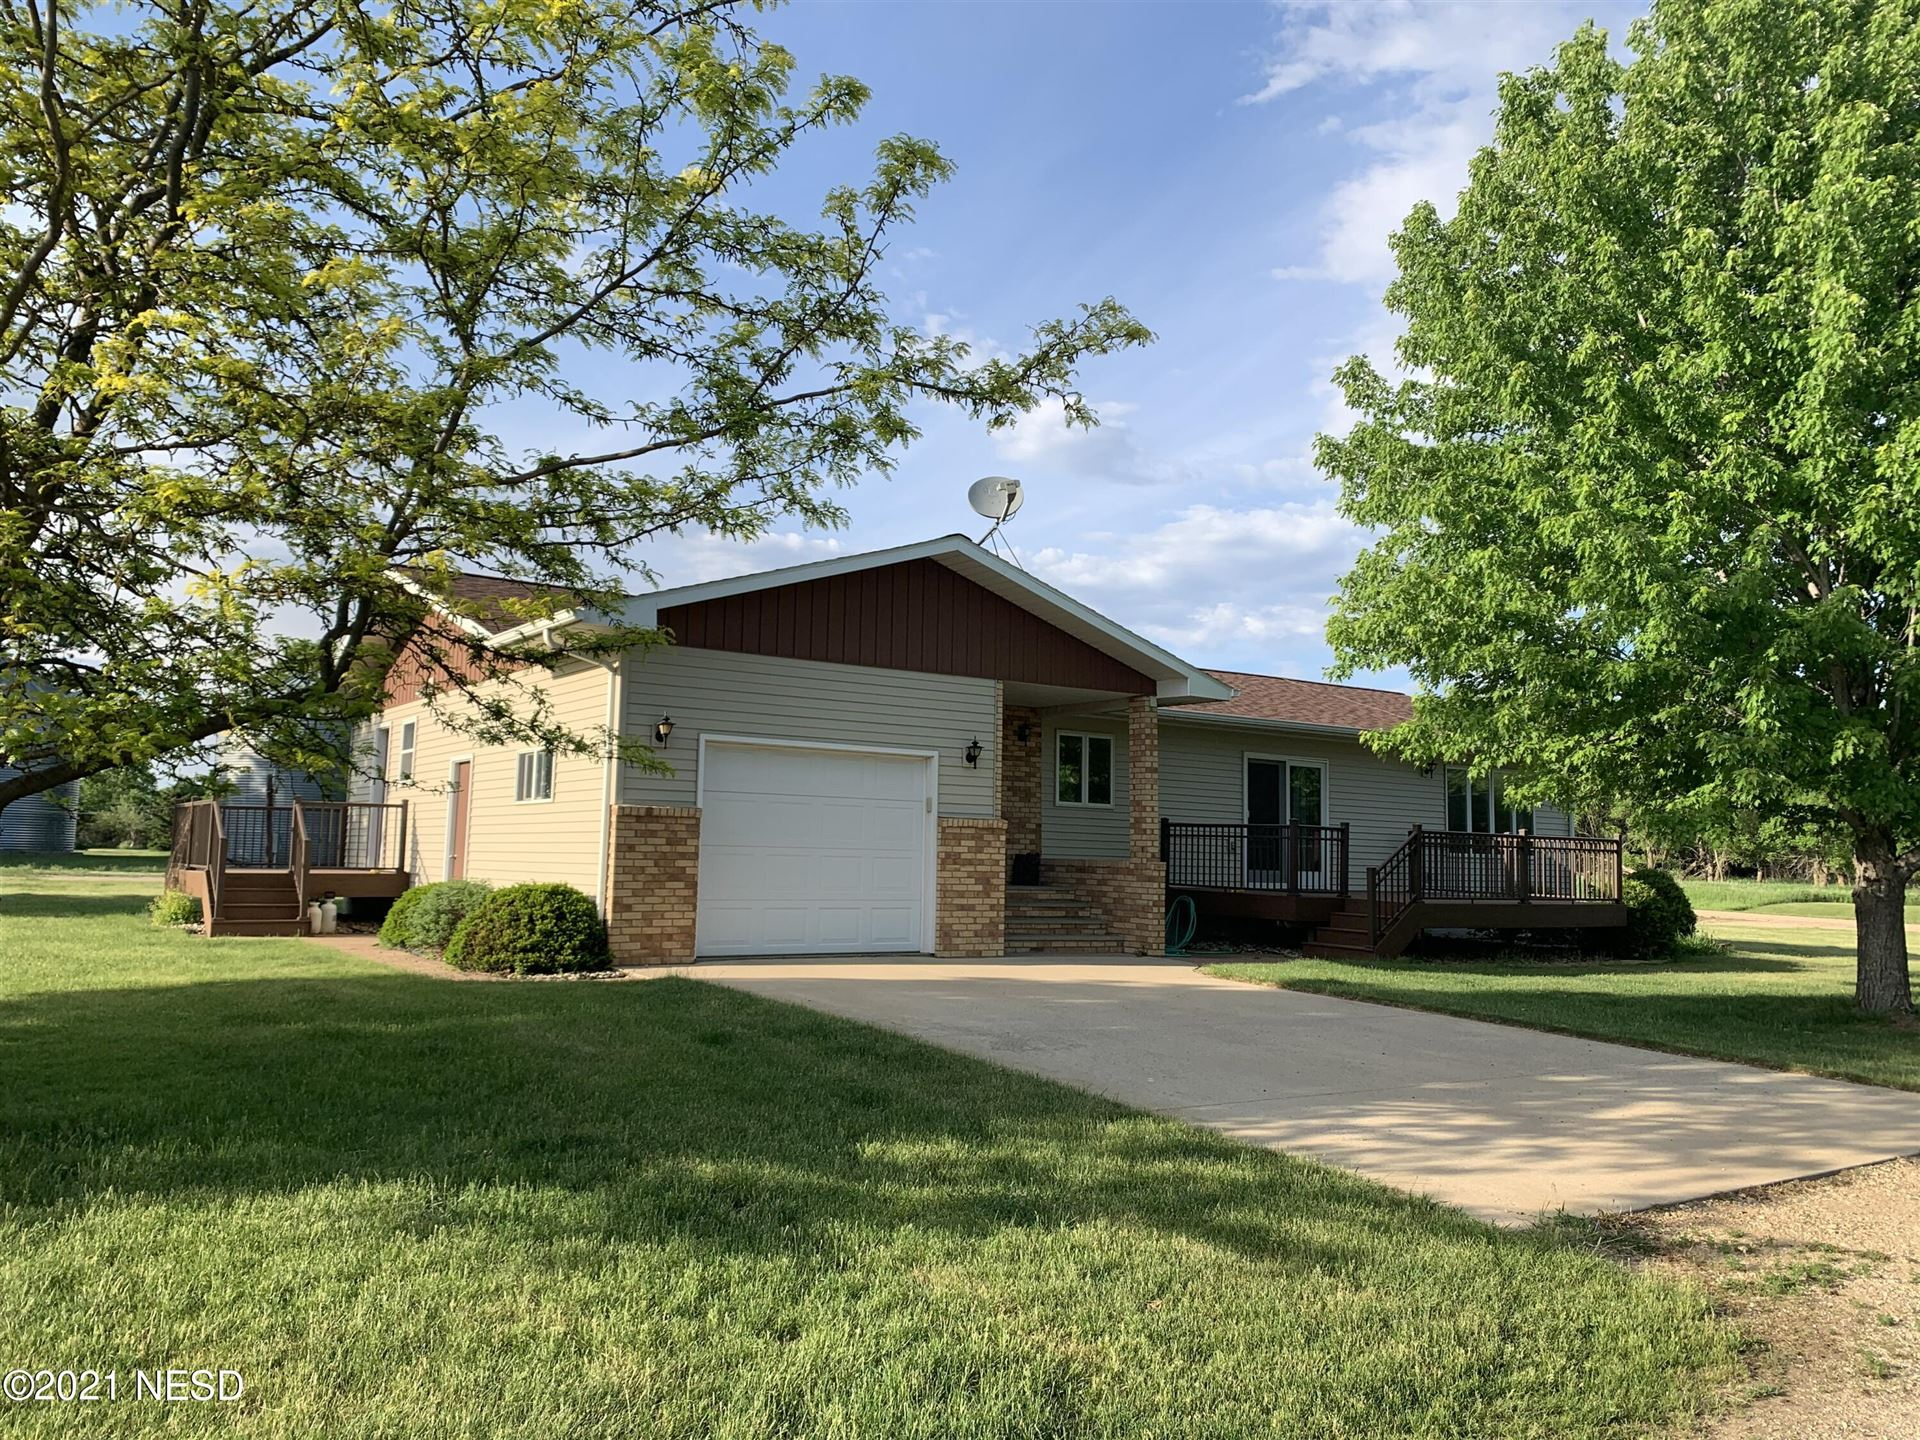 Photo of 14279 466TH AVENUE, Marvin, SD 57251 (MLS # 35-394)